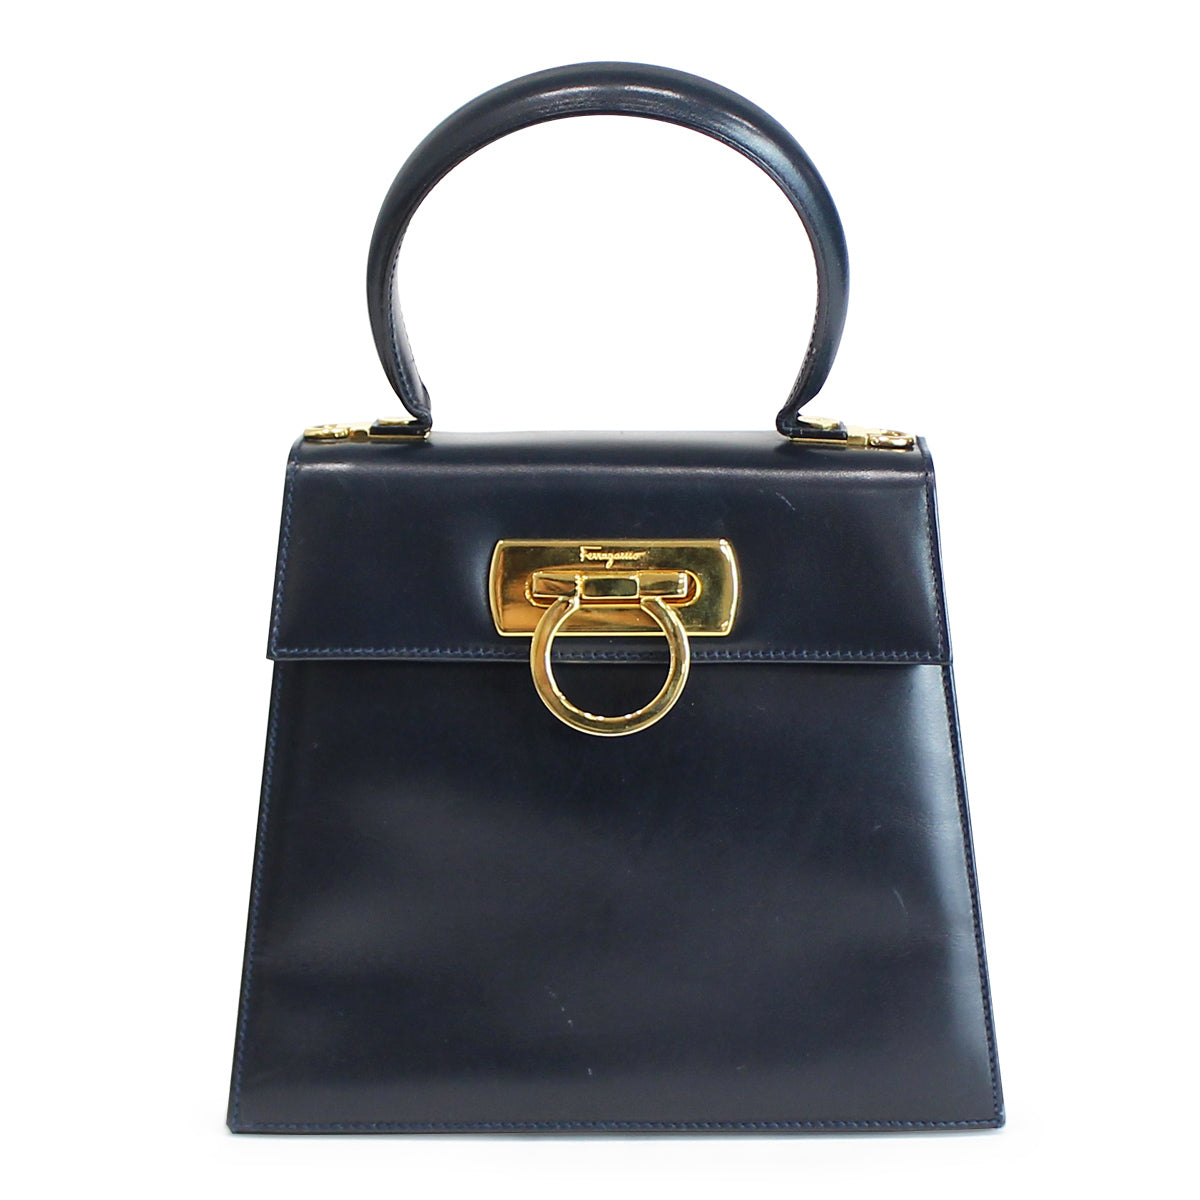 14c74e6ce24 SALVATORE FERRAGAMO Gancini 2way Shoulder Bag – CHUCO STYLE